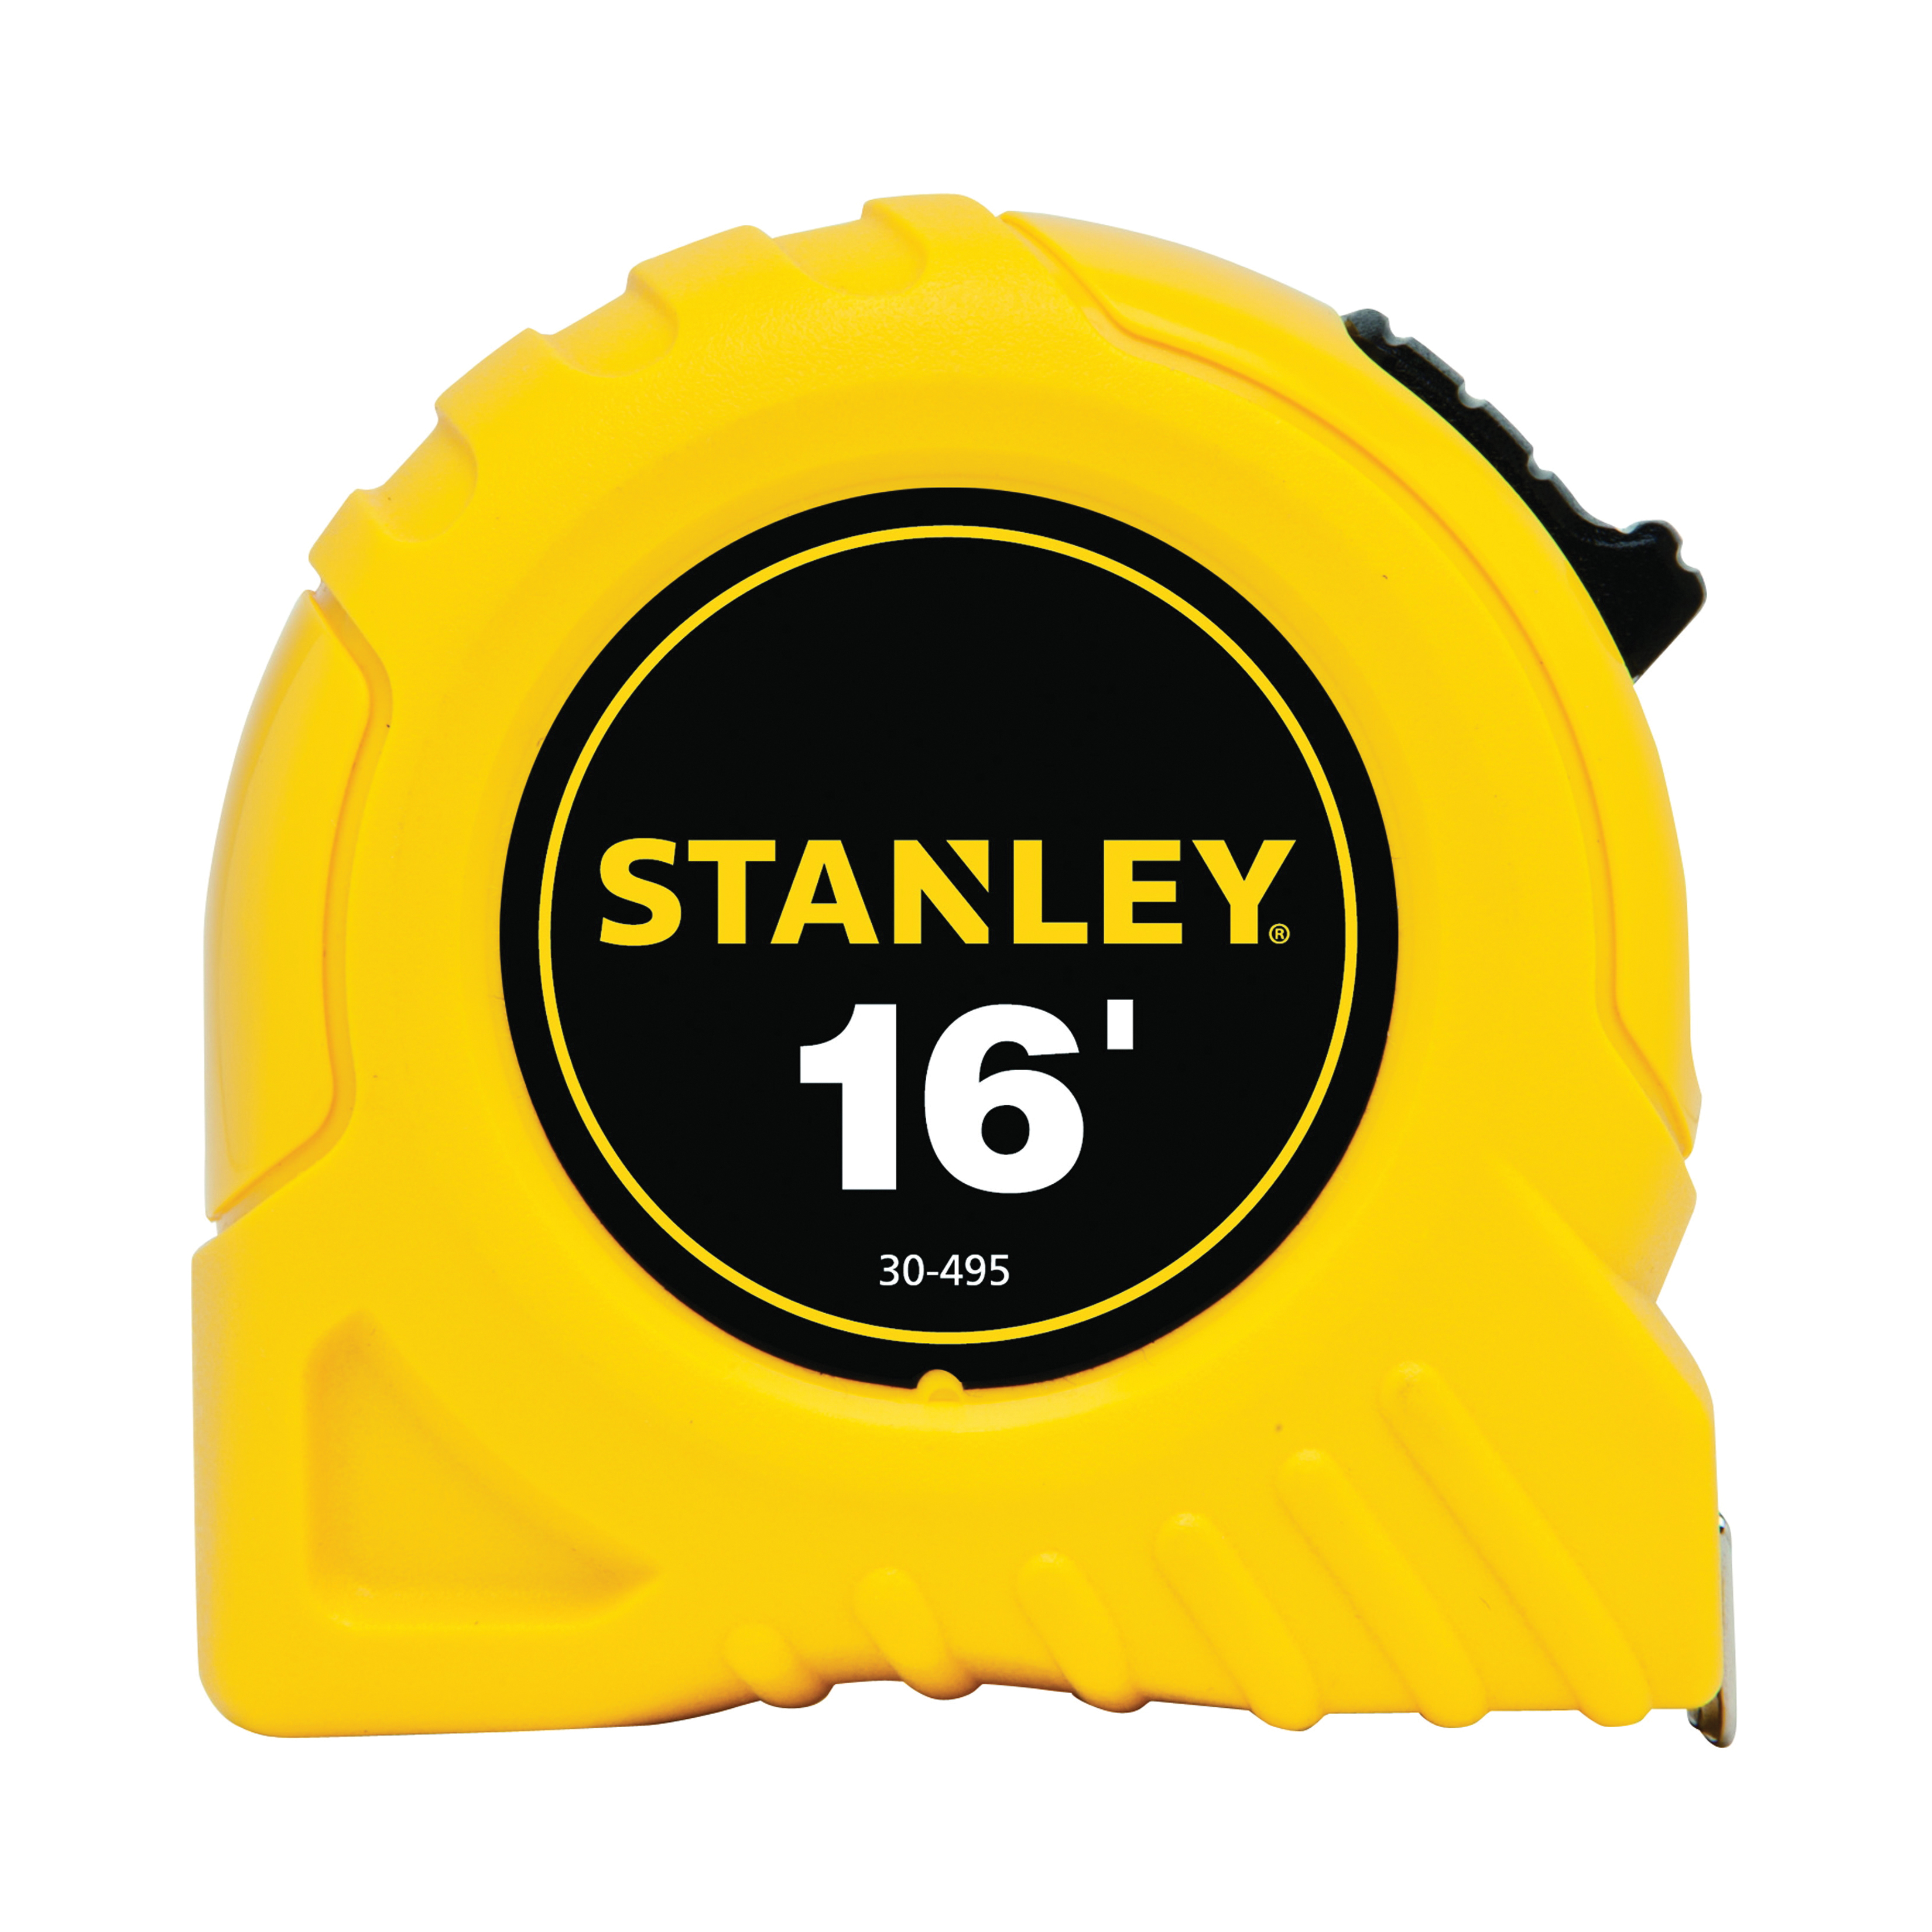 Stanley® 30-495 Tape Rule, 16 ft L x 3/4 in W Blade, Polymer Coated Steel, Imperial